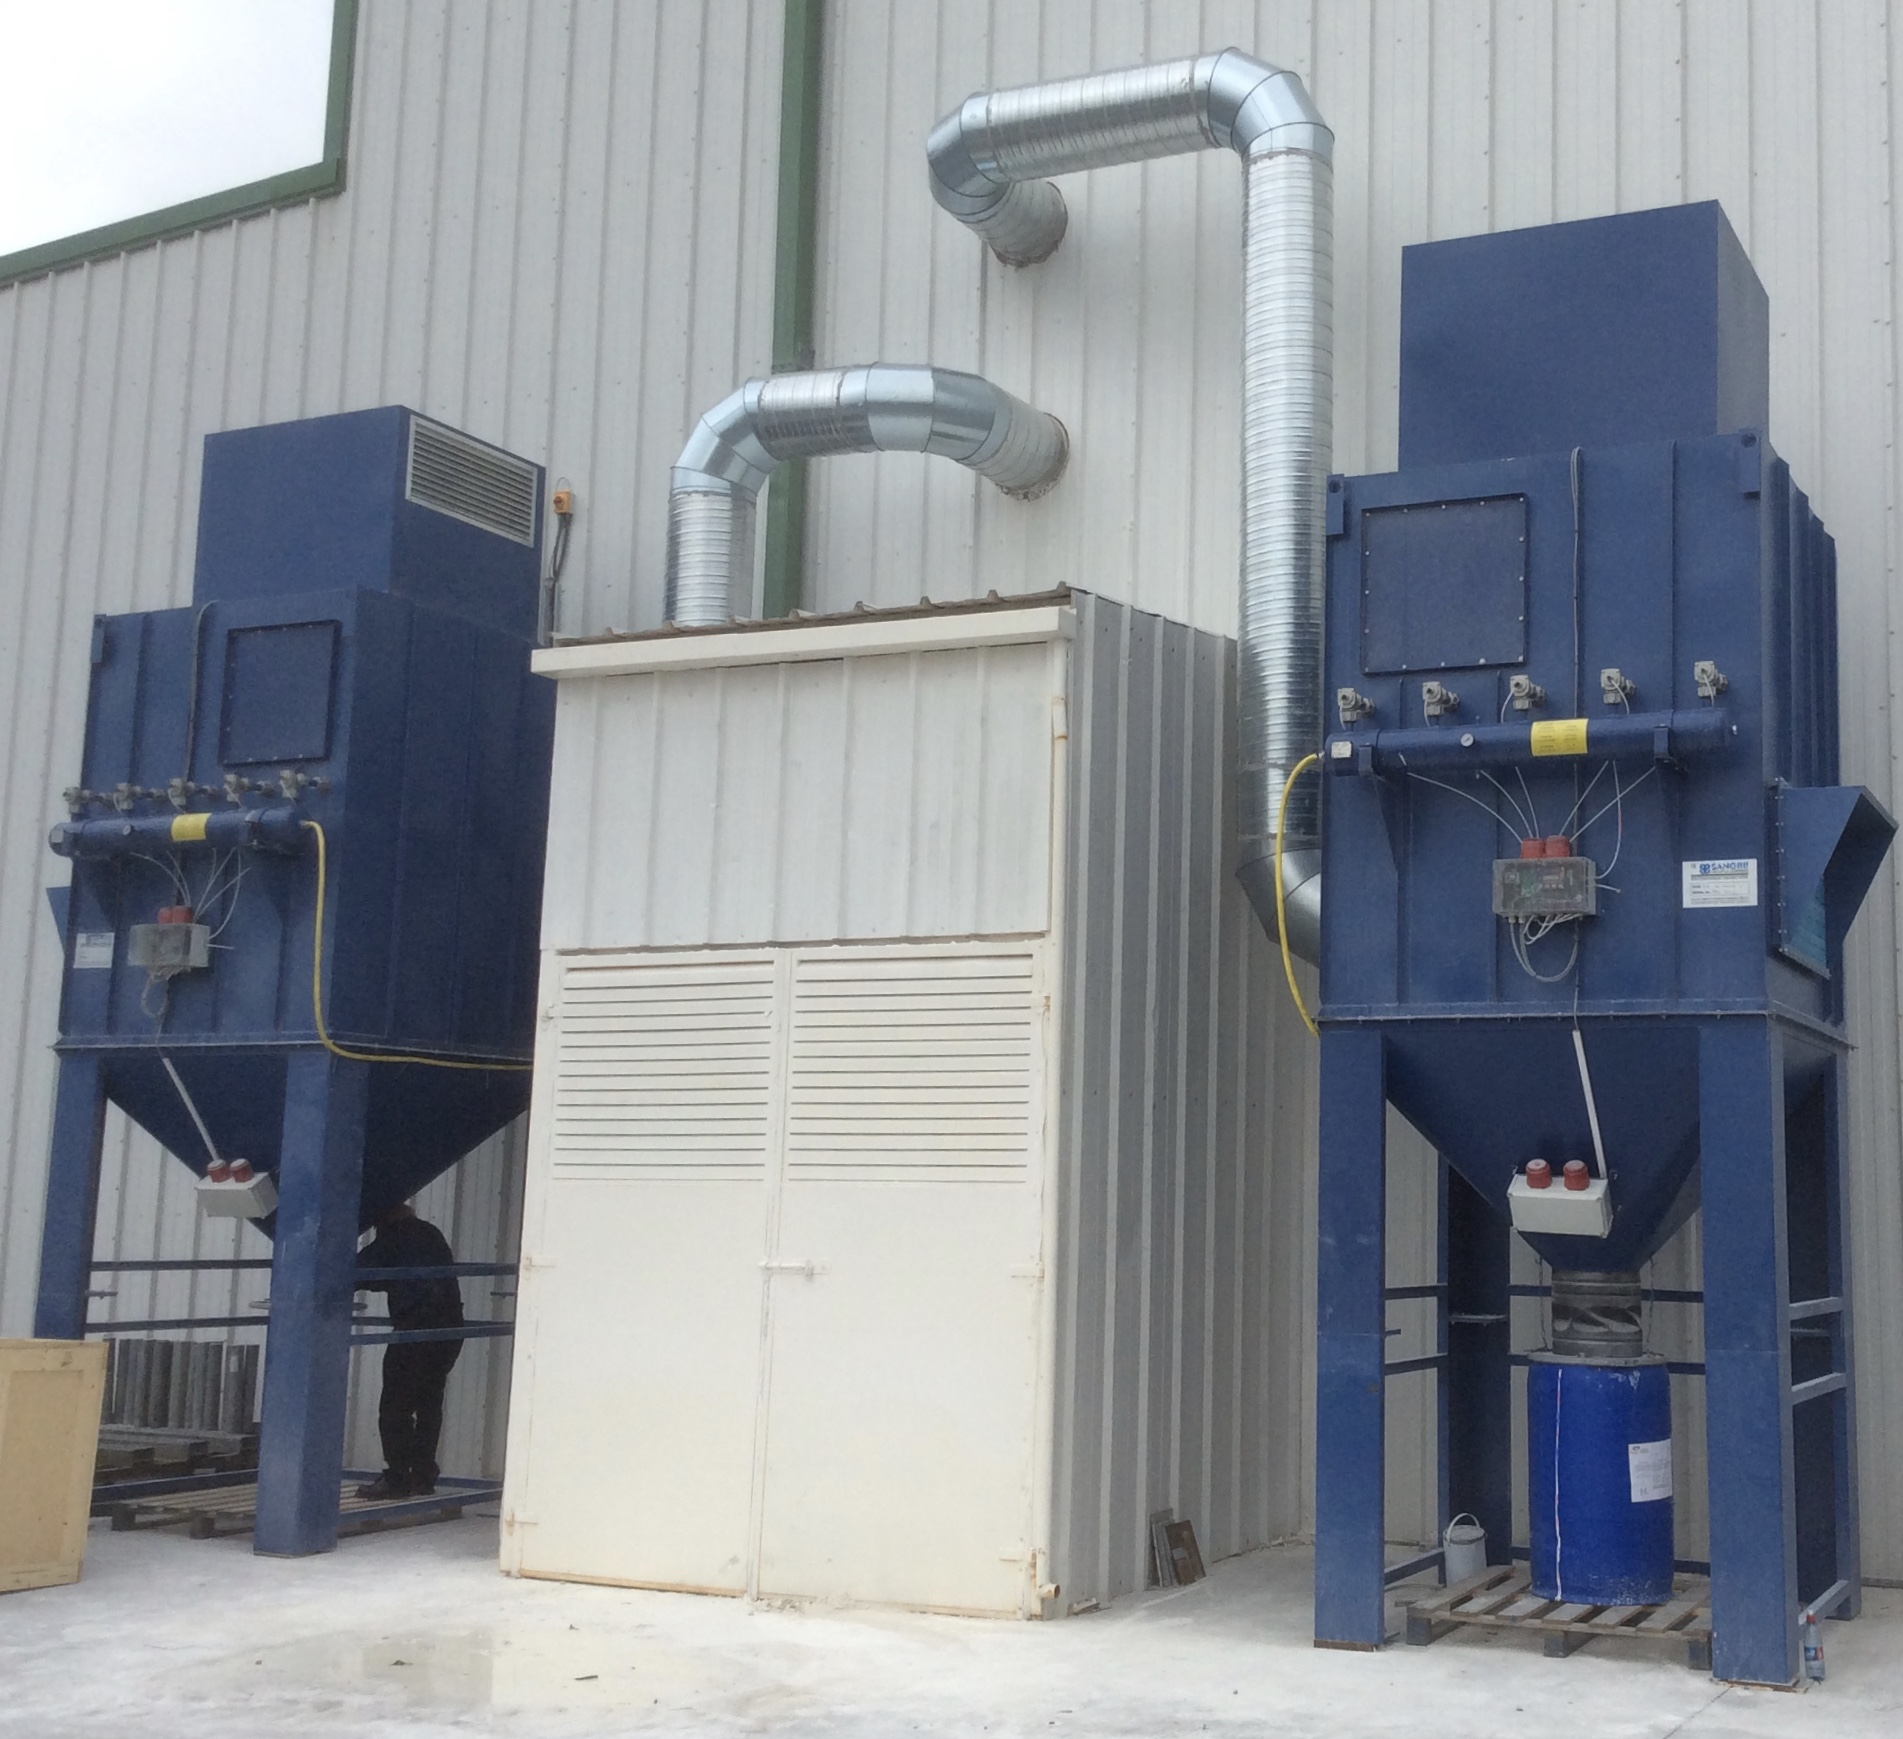 CF20 Reverse Jet Dust extraction units